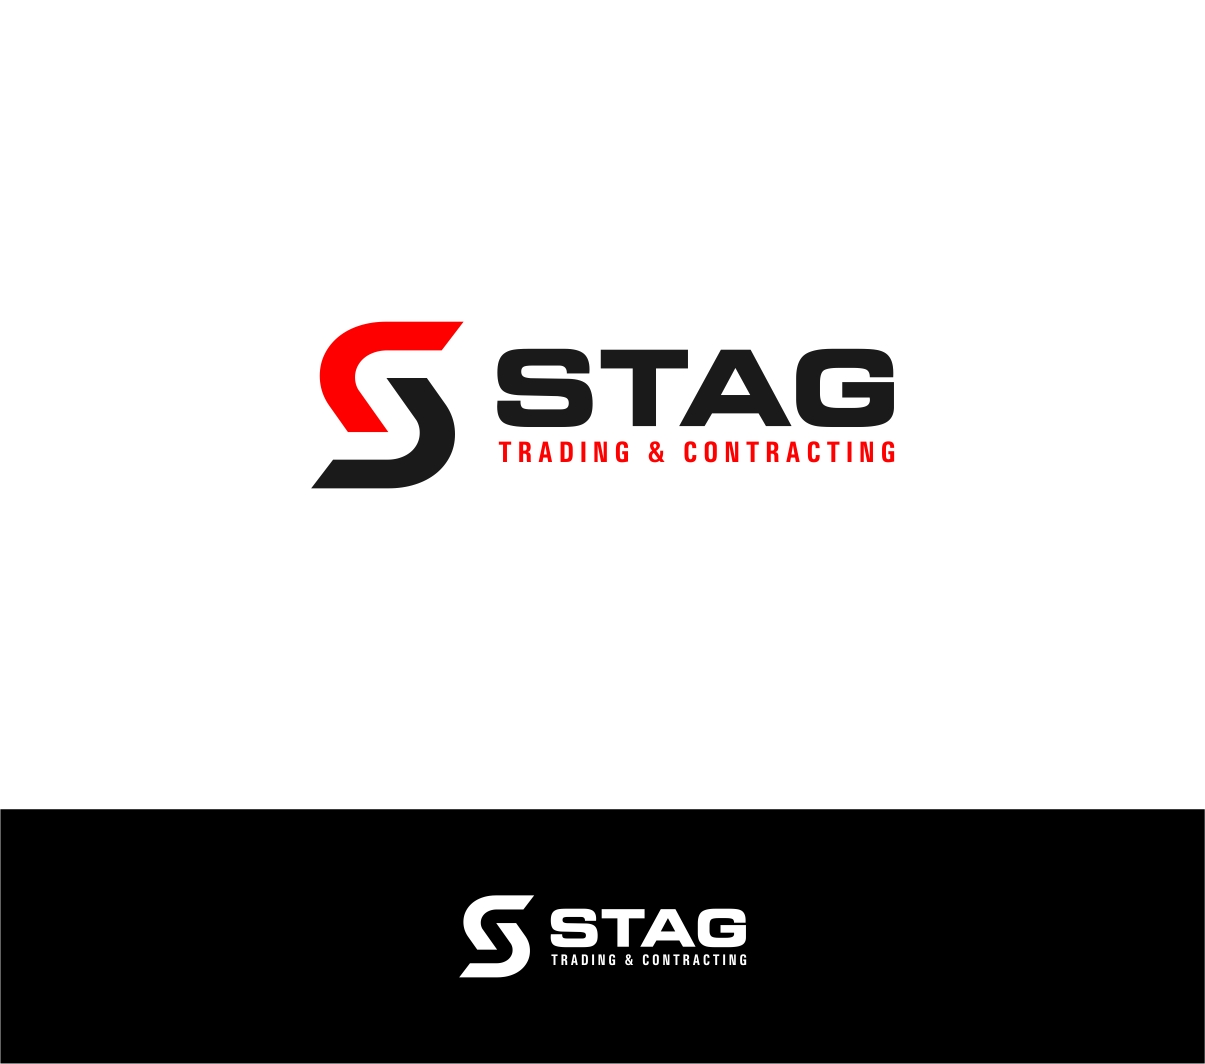 Logo Design by haidu - Entry No. 239 in the Logo Design Contest Captivating Logo Design for STAG Trading & Contracting.